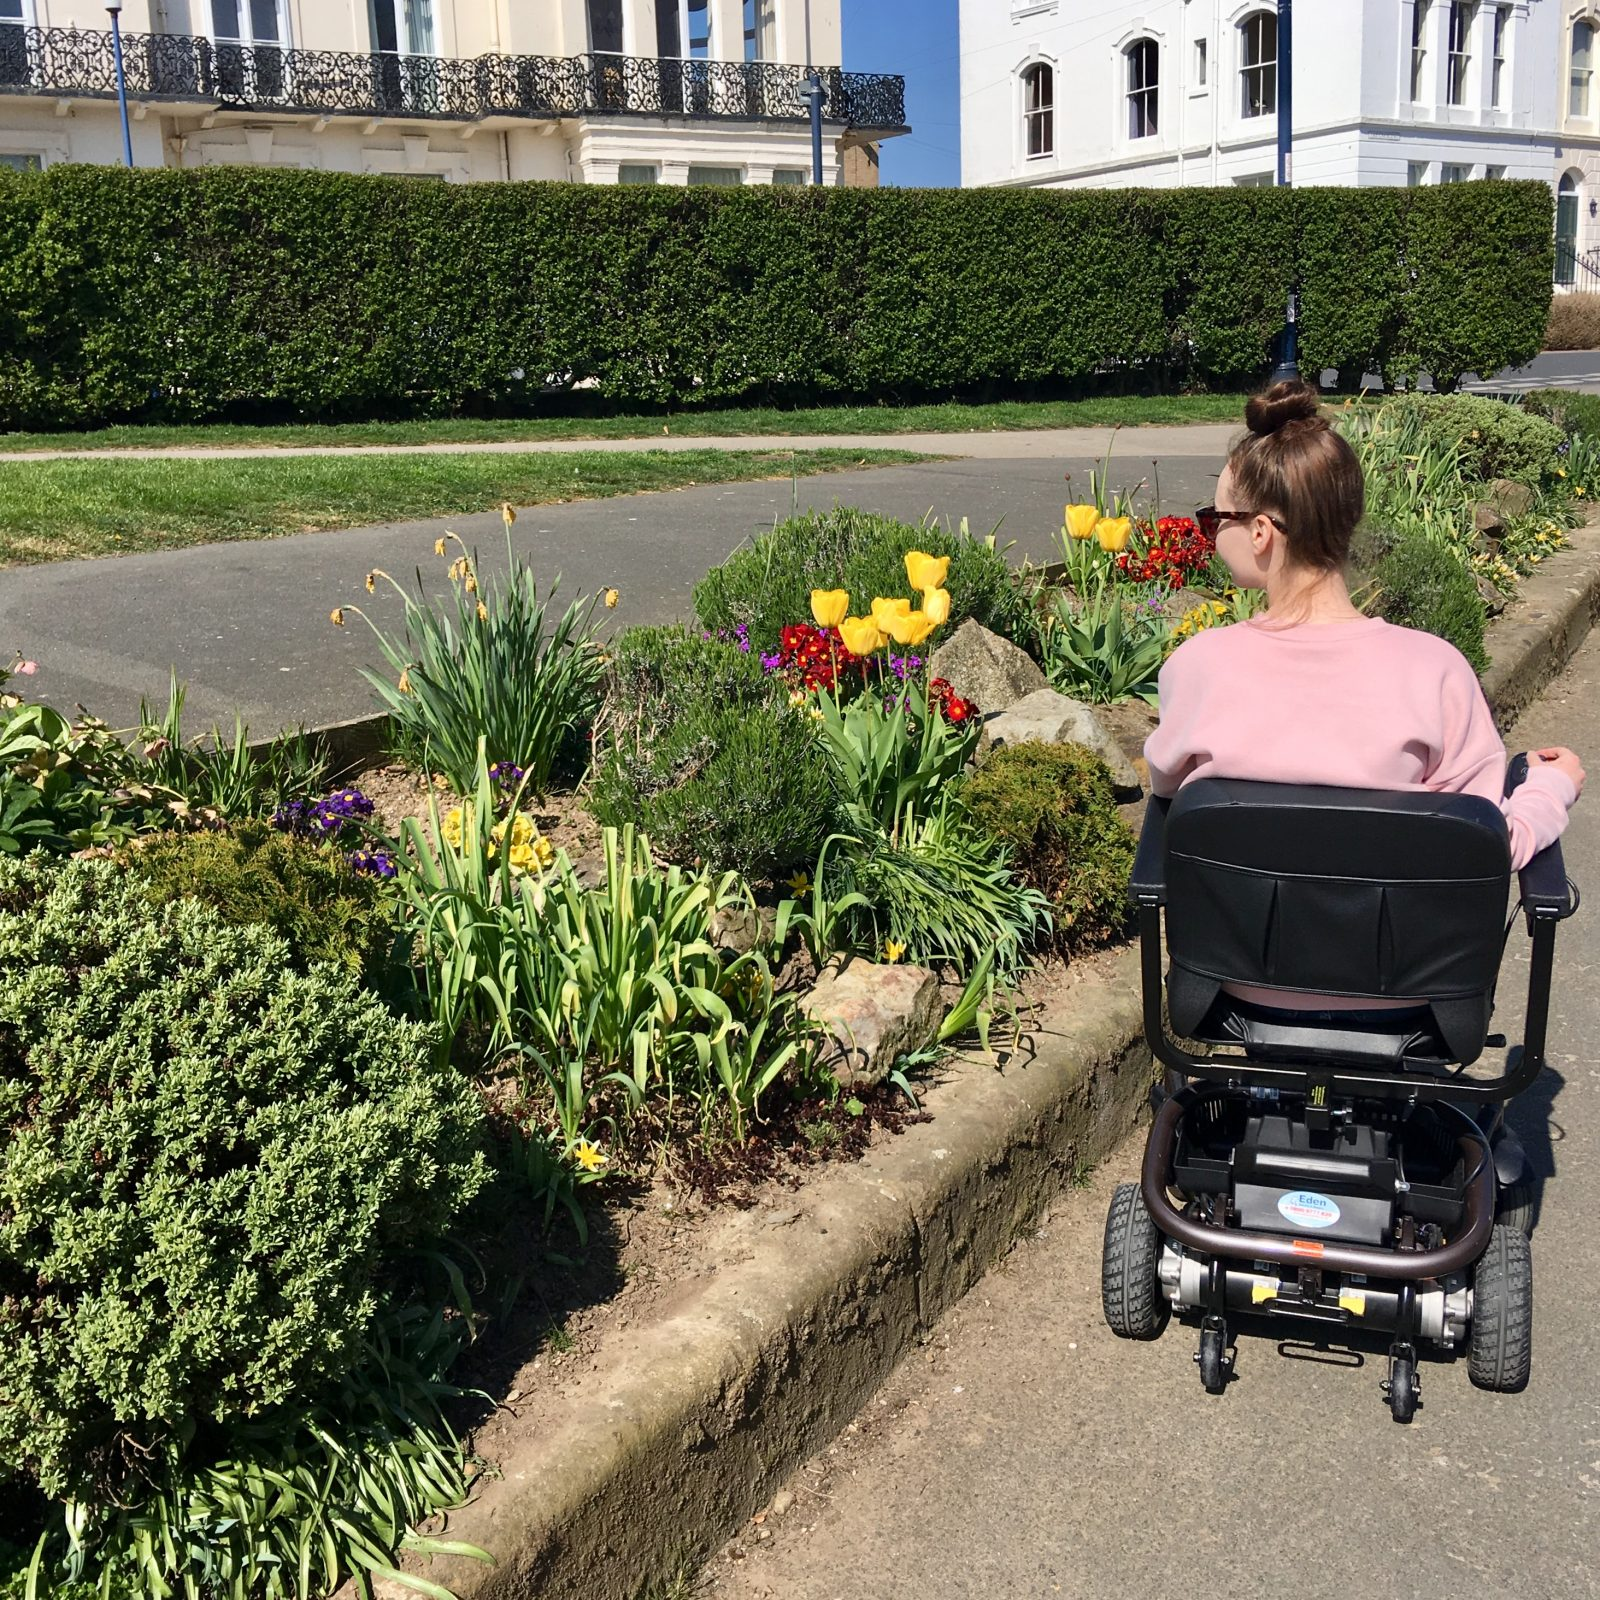 pippa in powerchair with back to camera, looking at colourful flowers along side of path